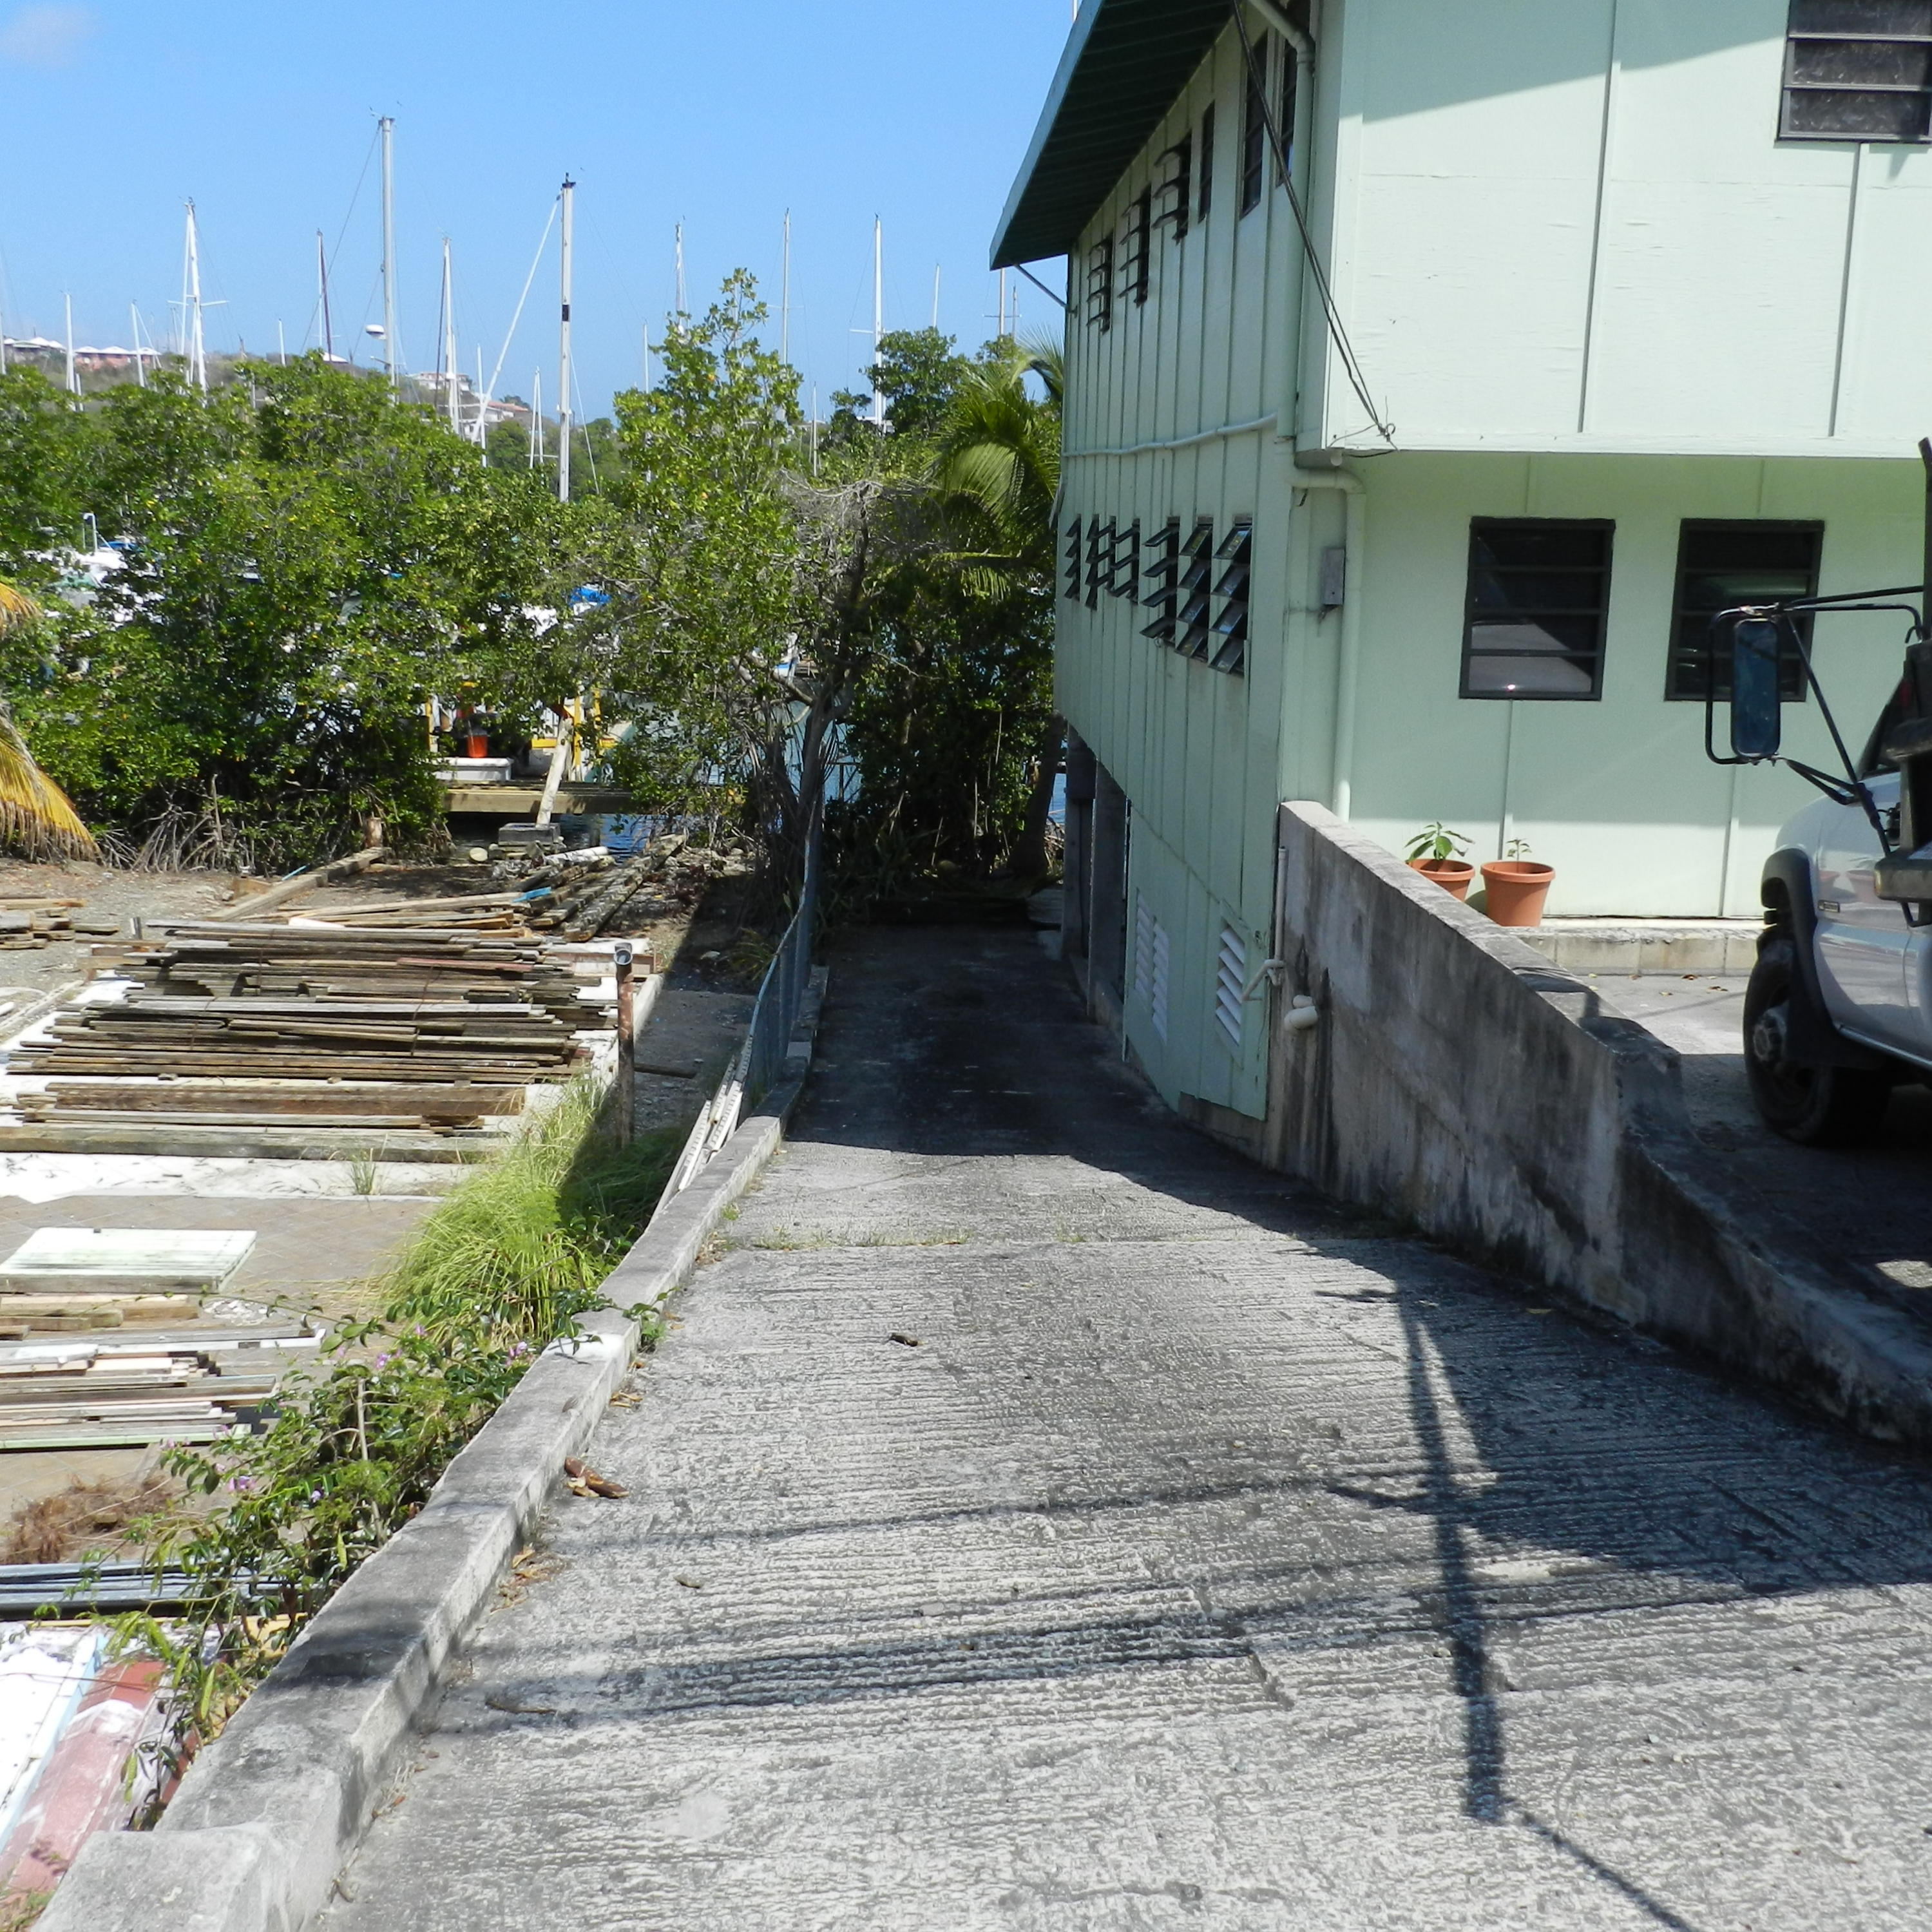 Driveway to dock and lower apartment